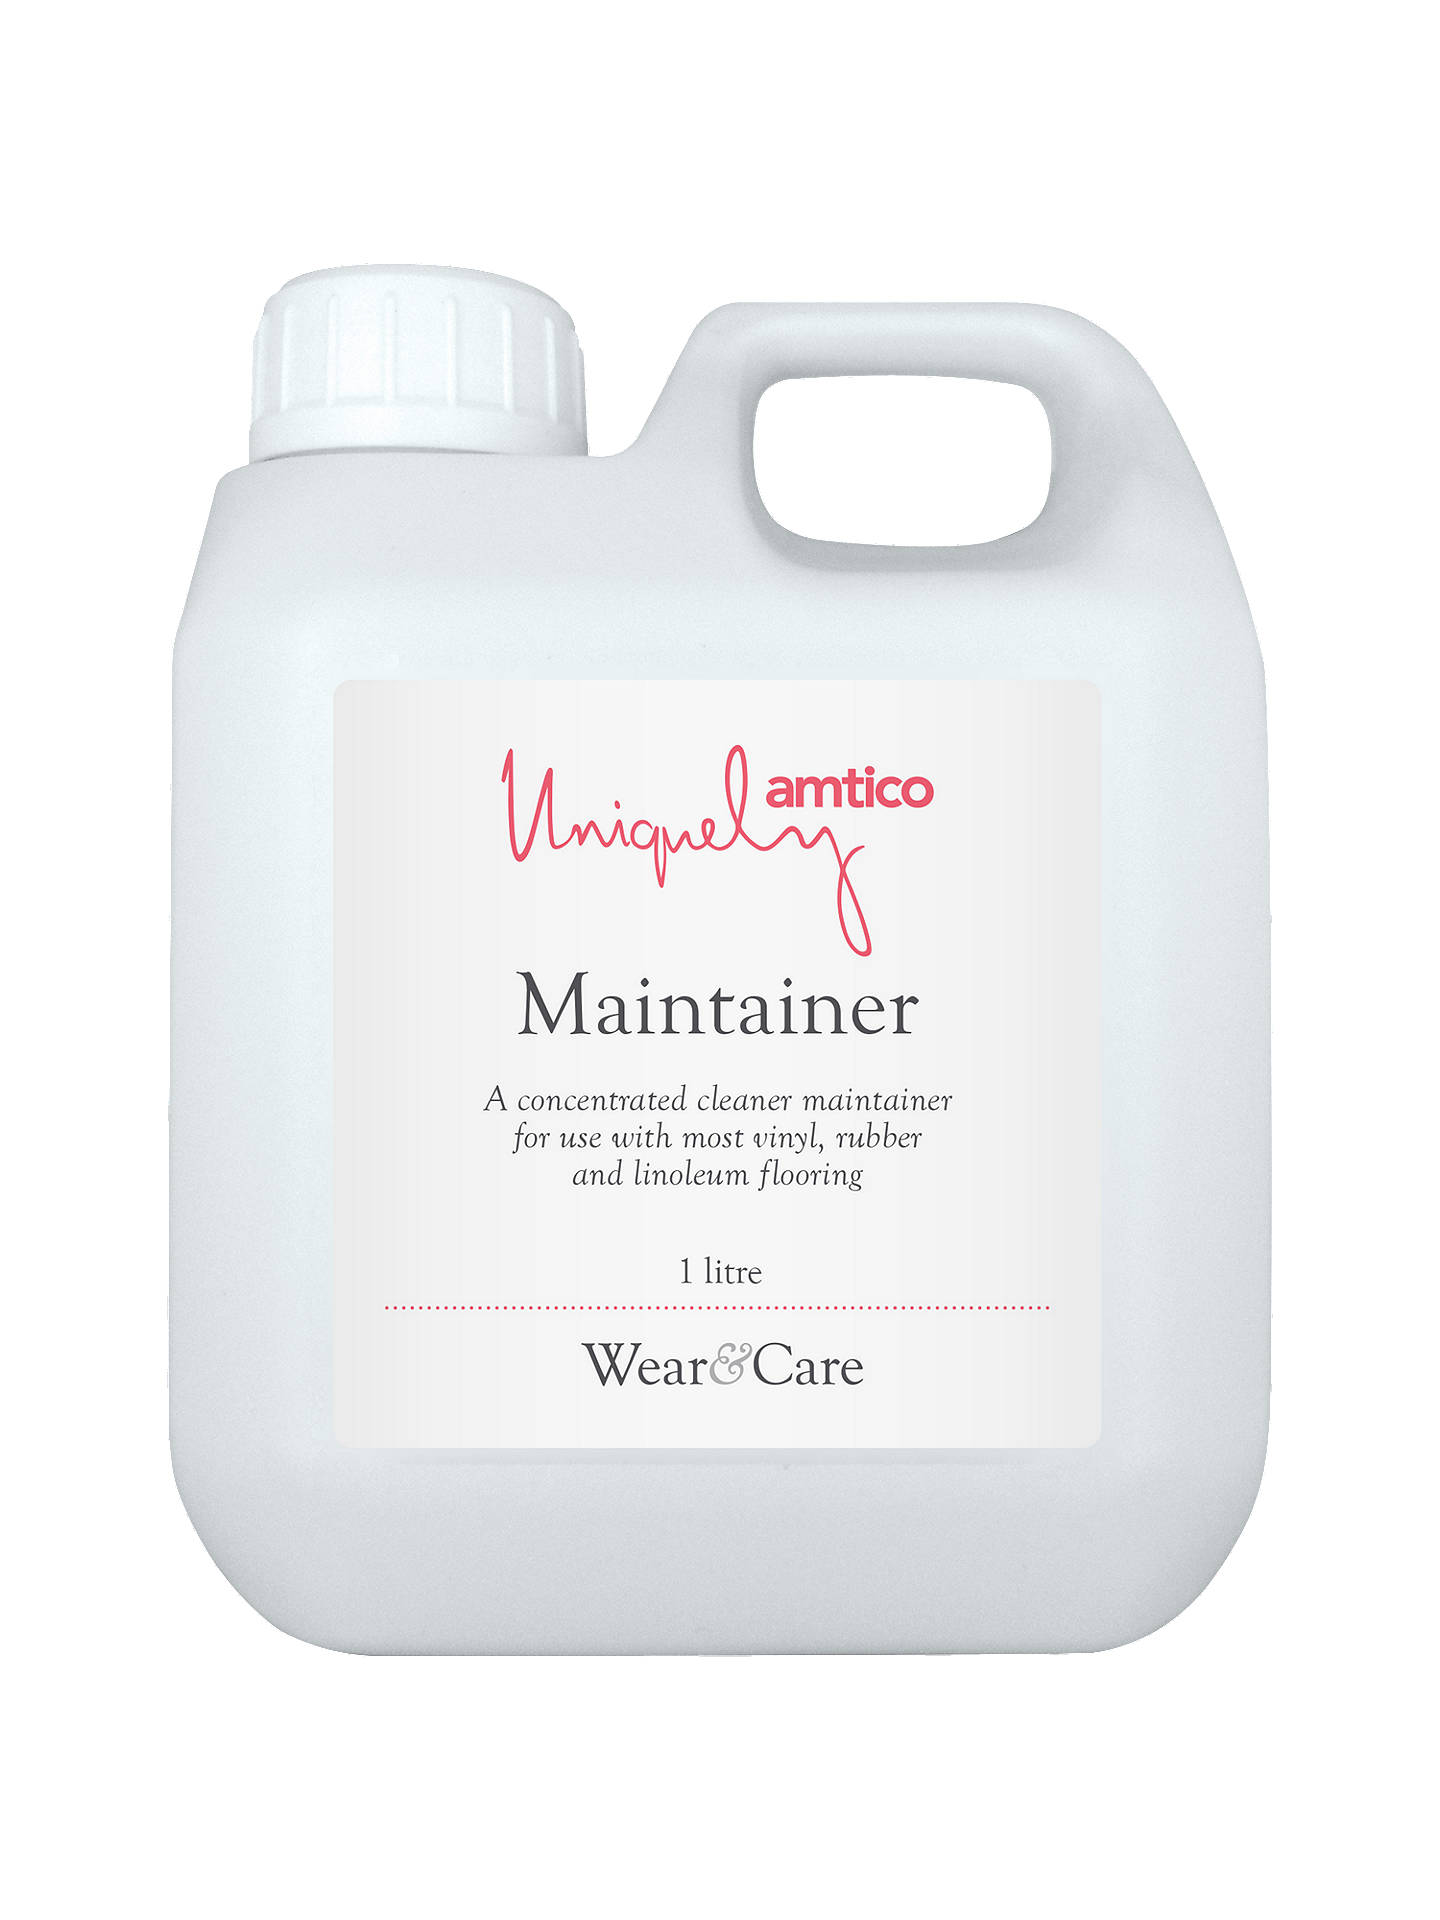 Buy Amtico International Floorcare Maintainer, 1 Litre Online at johnlewis.com